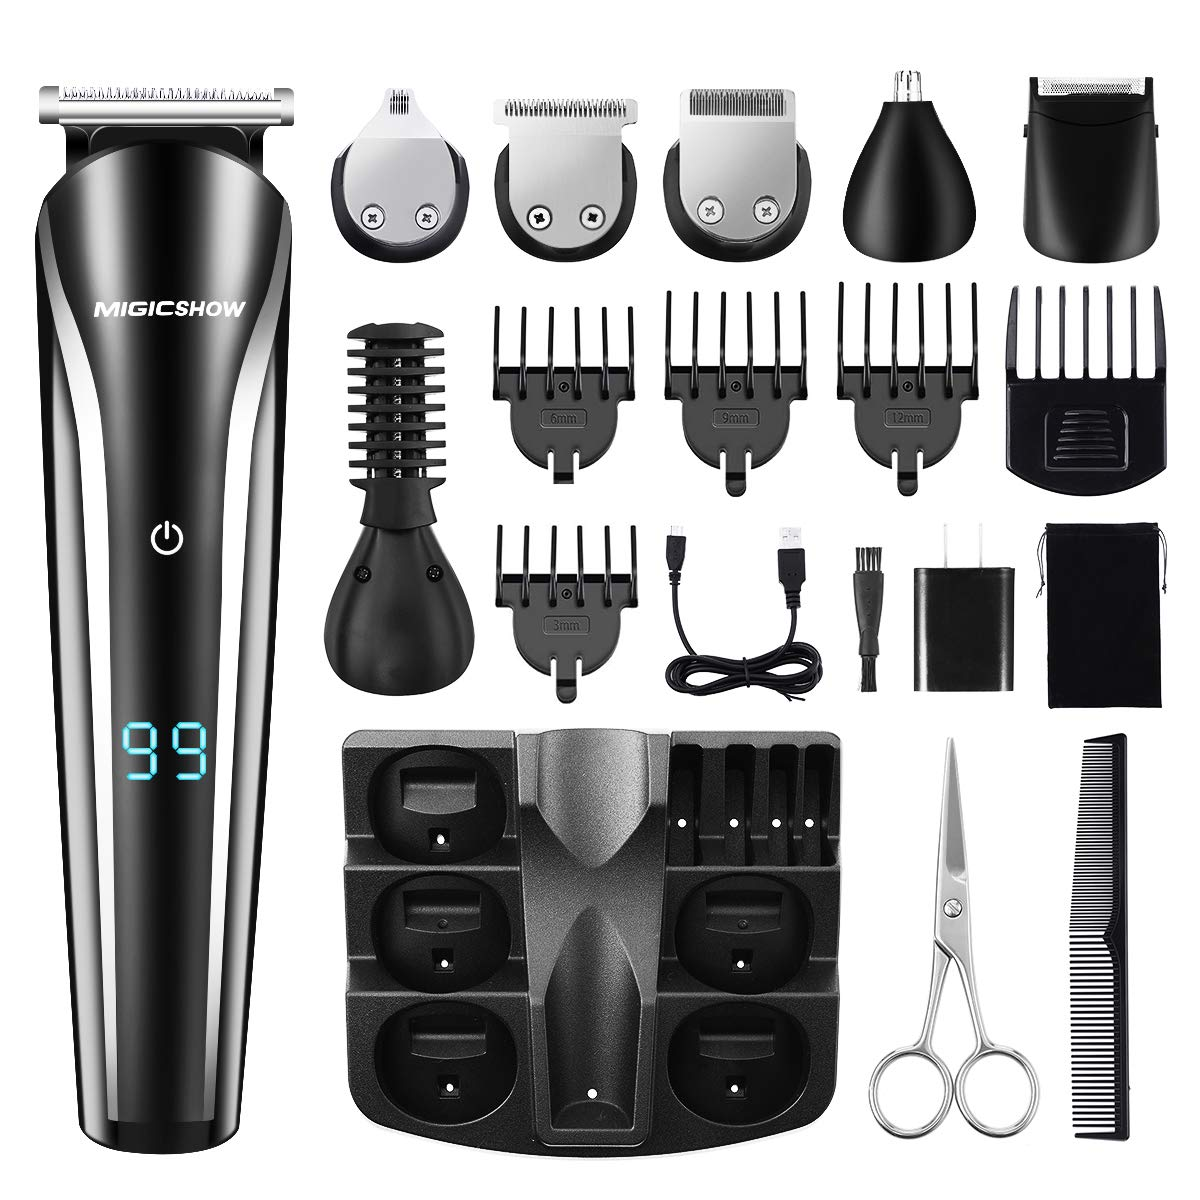 Beard Trimmer For Men, MIGICSHOW Cordless Hair Clippers Waterproof 12 in 1 Multi-functional Mustache Trimmer Grooming Kit for Nose Ear Beard Hair with LED Display, Body Trimmer USB Rechargeable